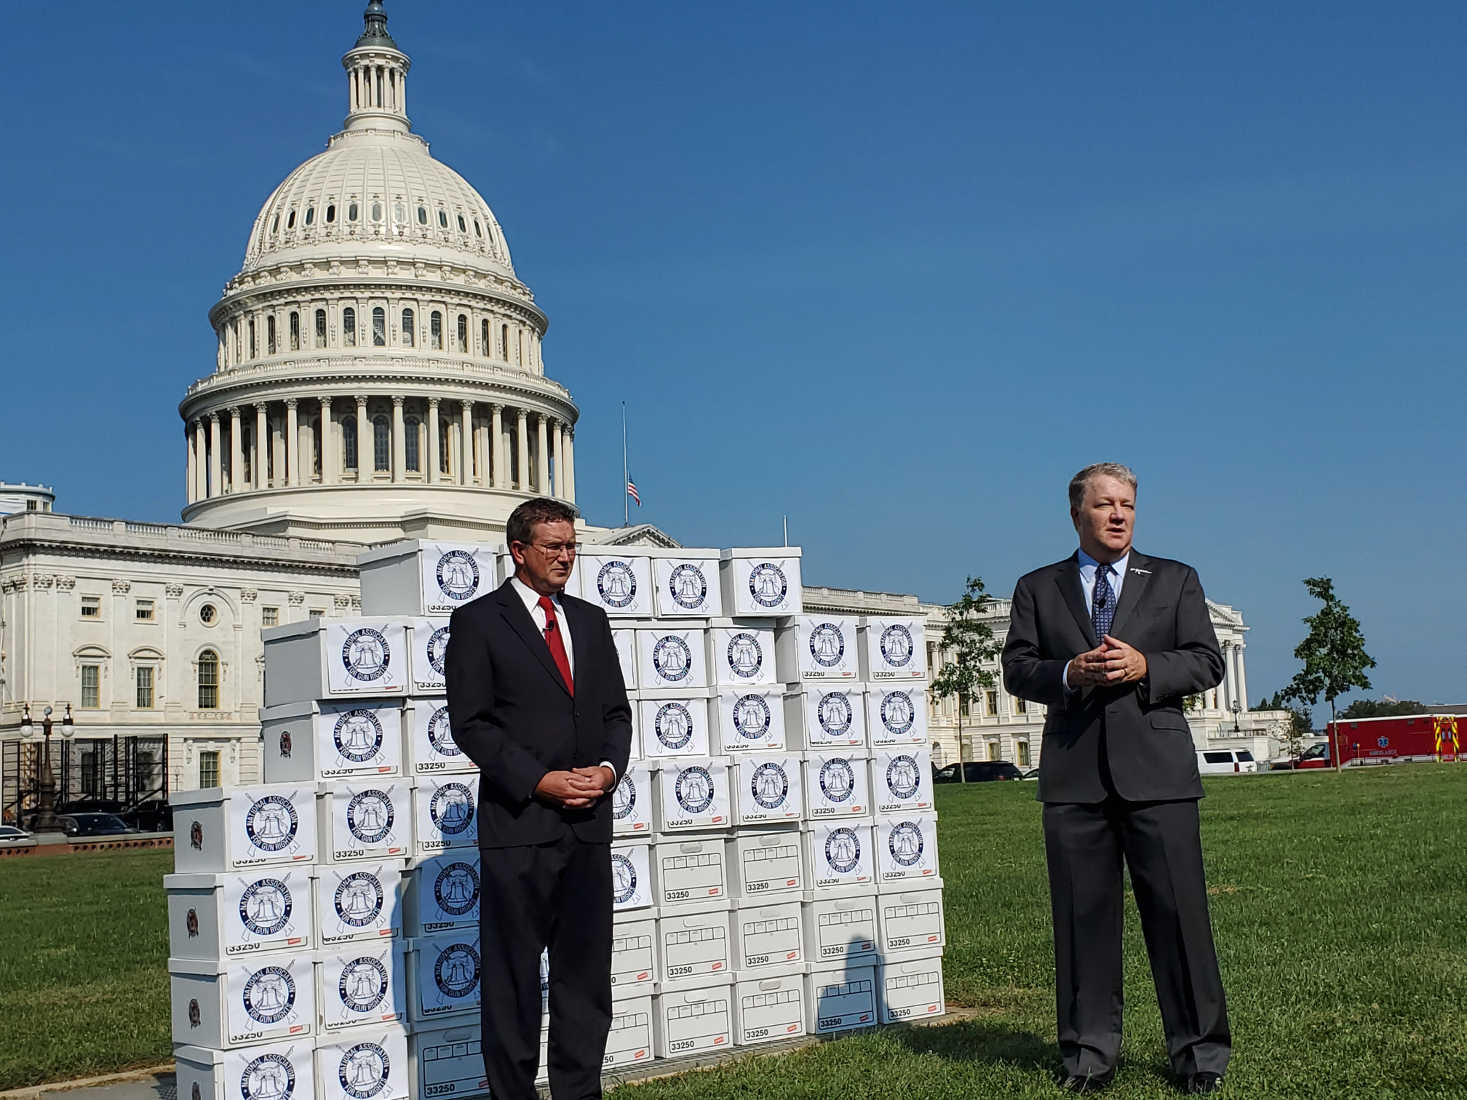 Gun Rights Group Delivers Petitions Opposing Federal Gun Bills